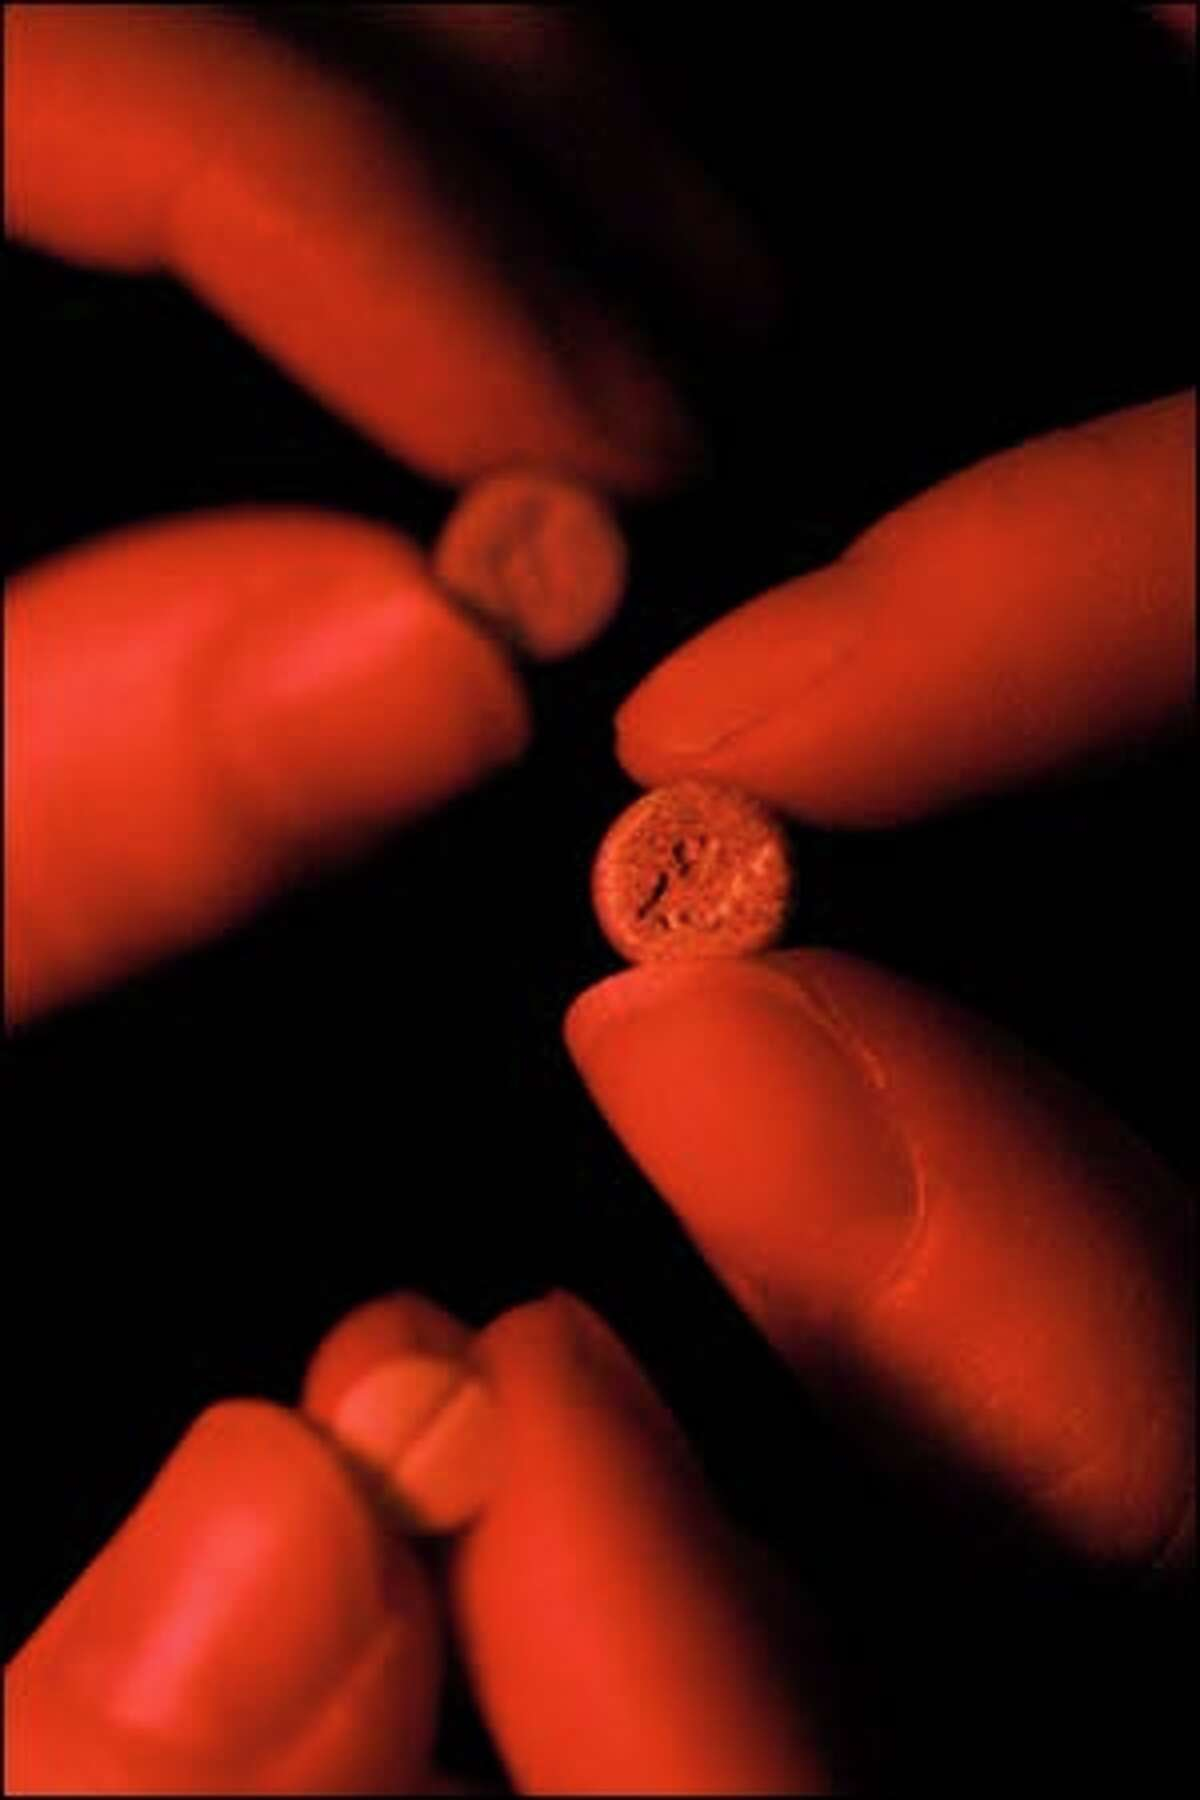 Ecstasy is popping up in the hands of a wide range of people in Seattle, not just